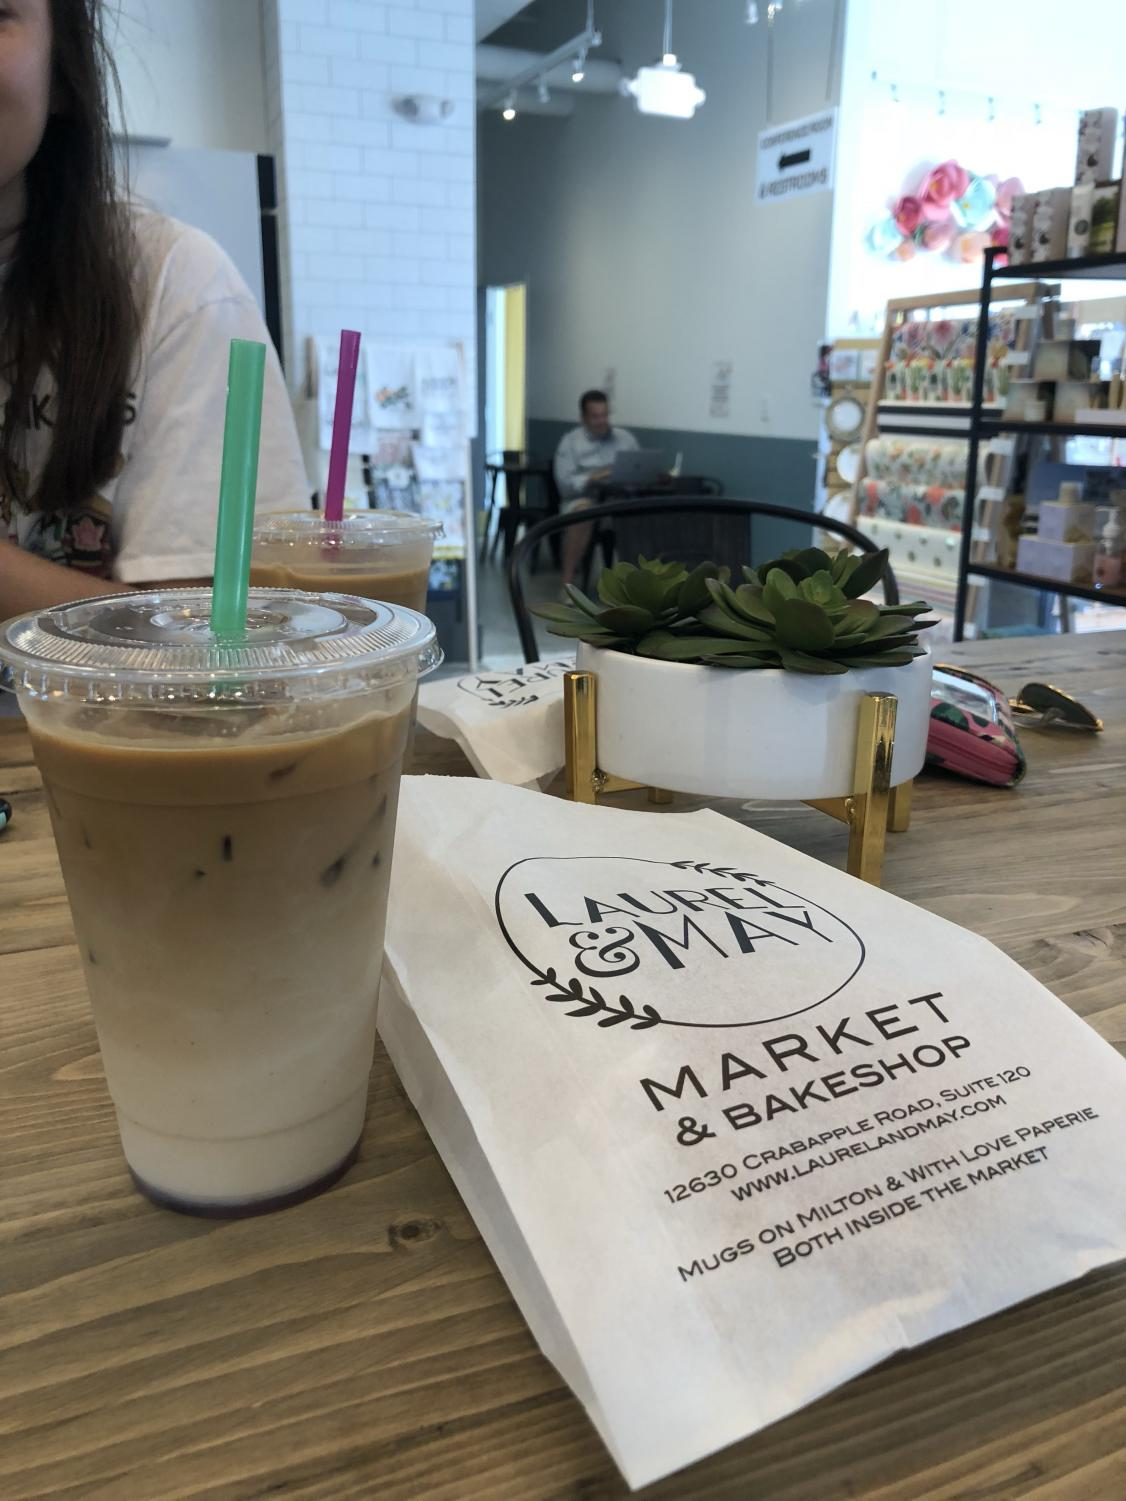 Pictured is Laurel and May's delicious lavender latte. Photo Credit: Smriti Tayal